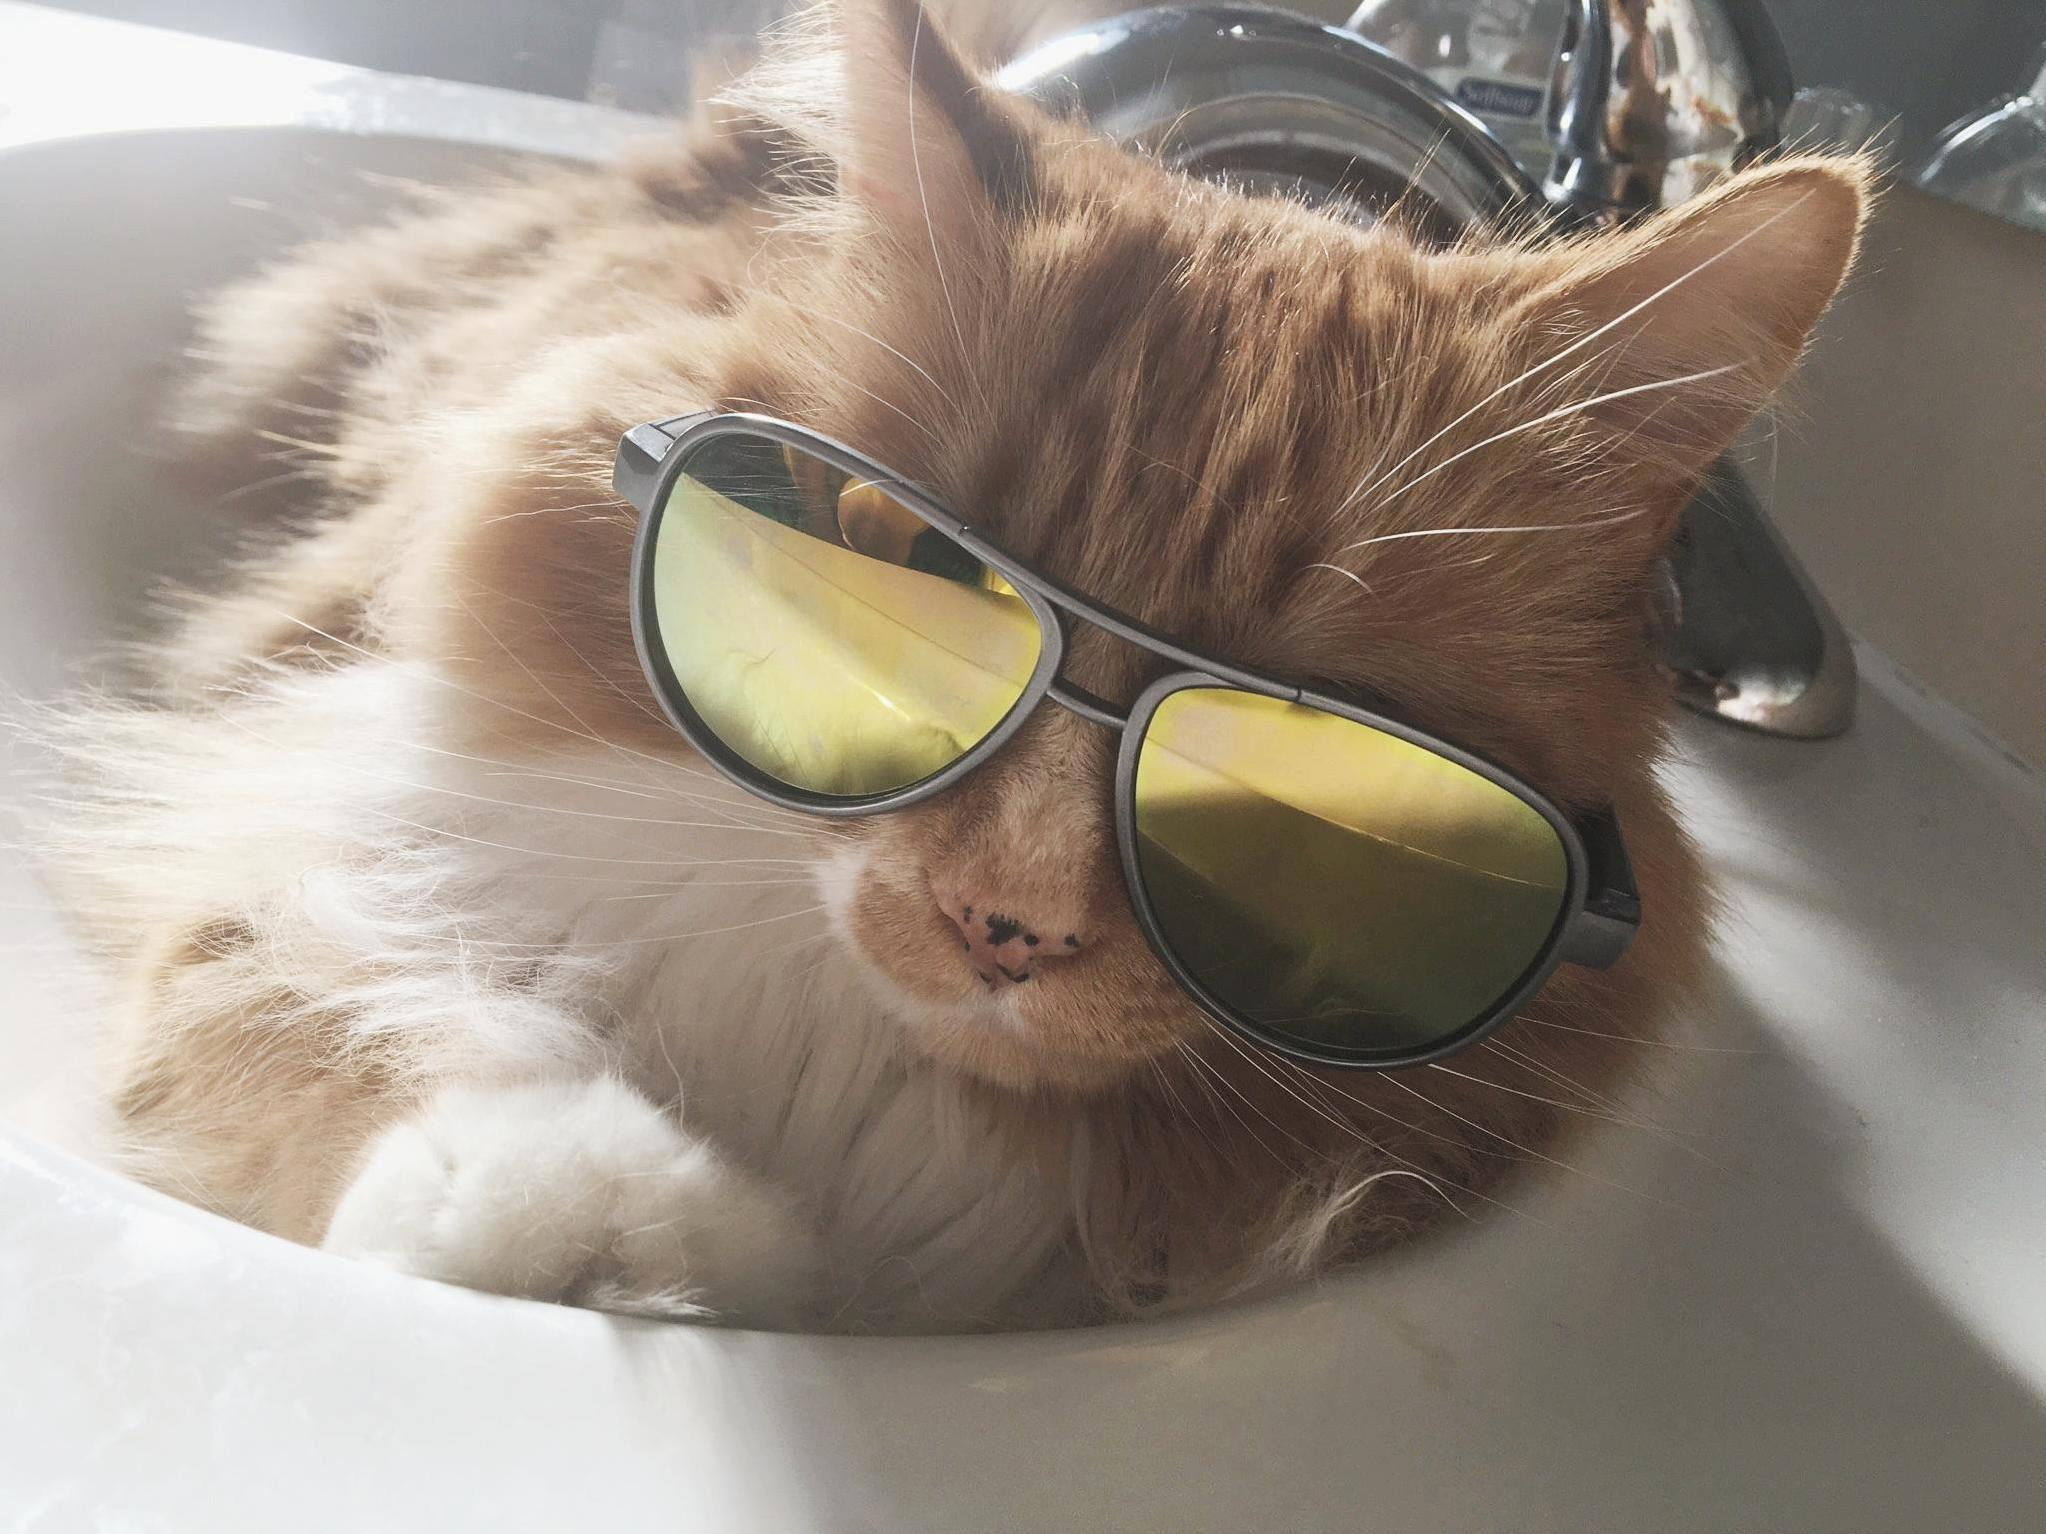 Coolest cat around 